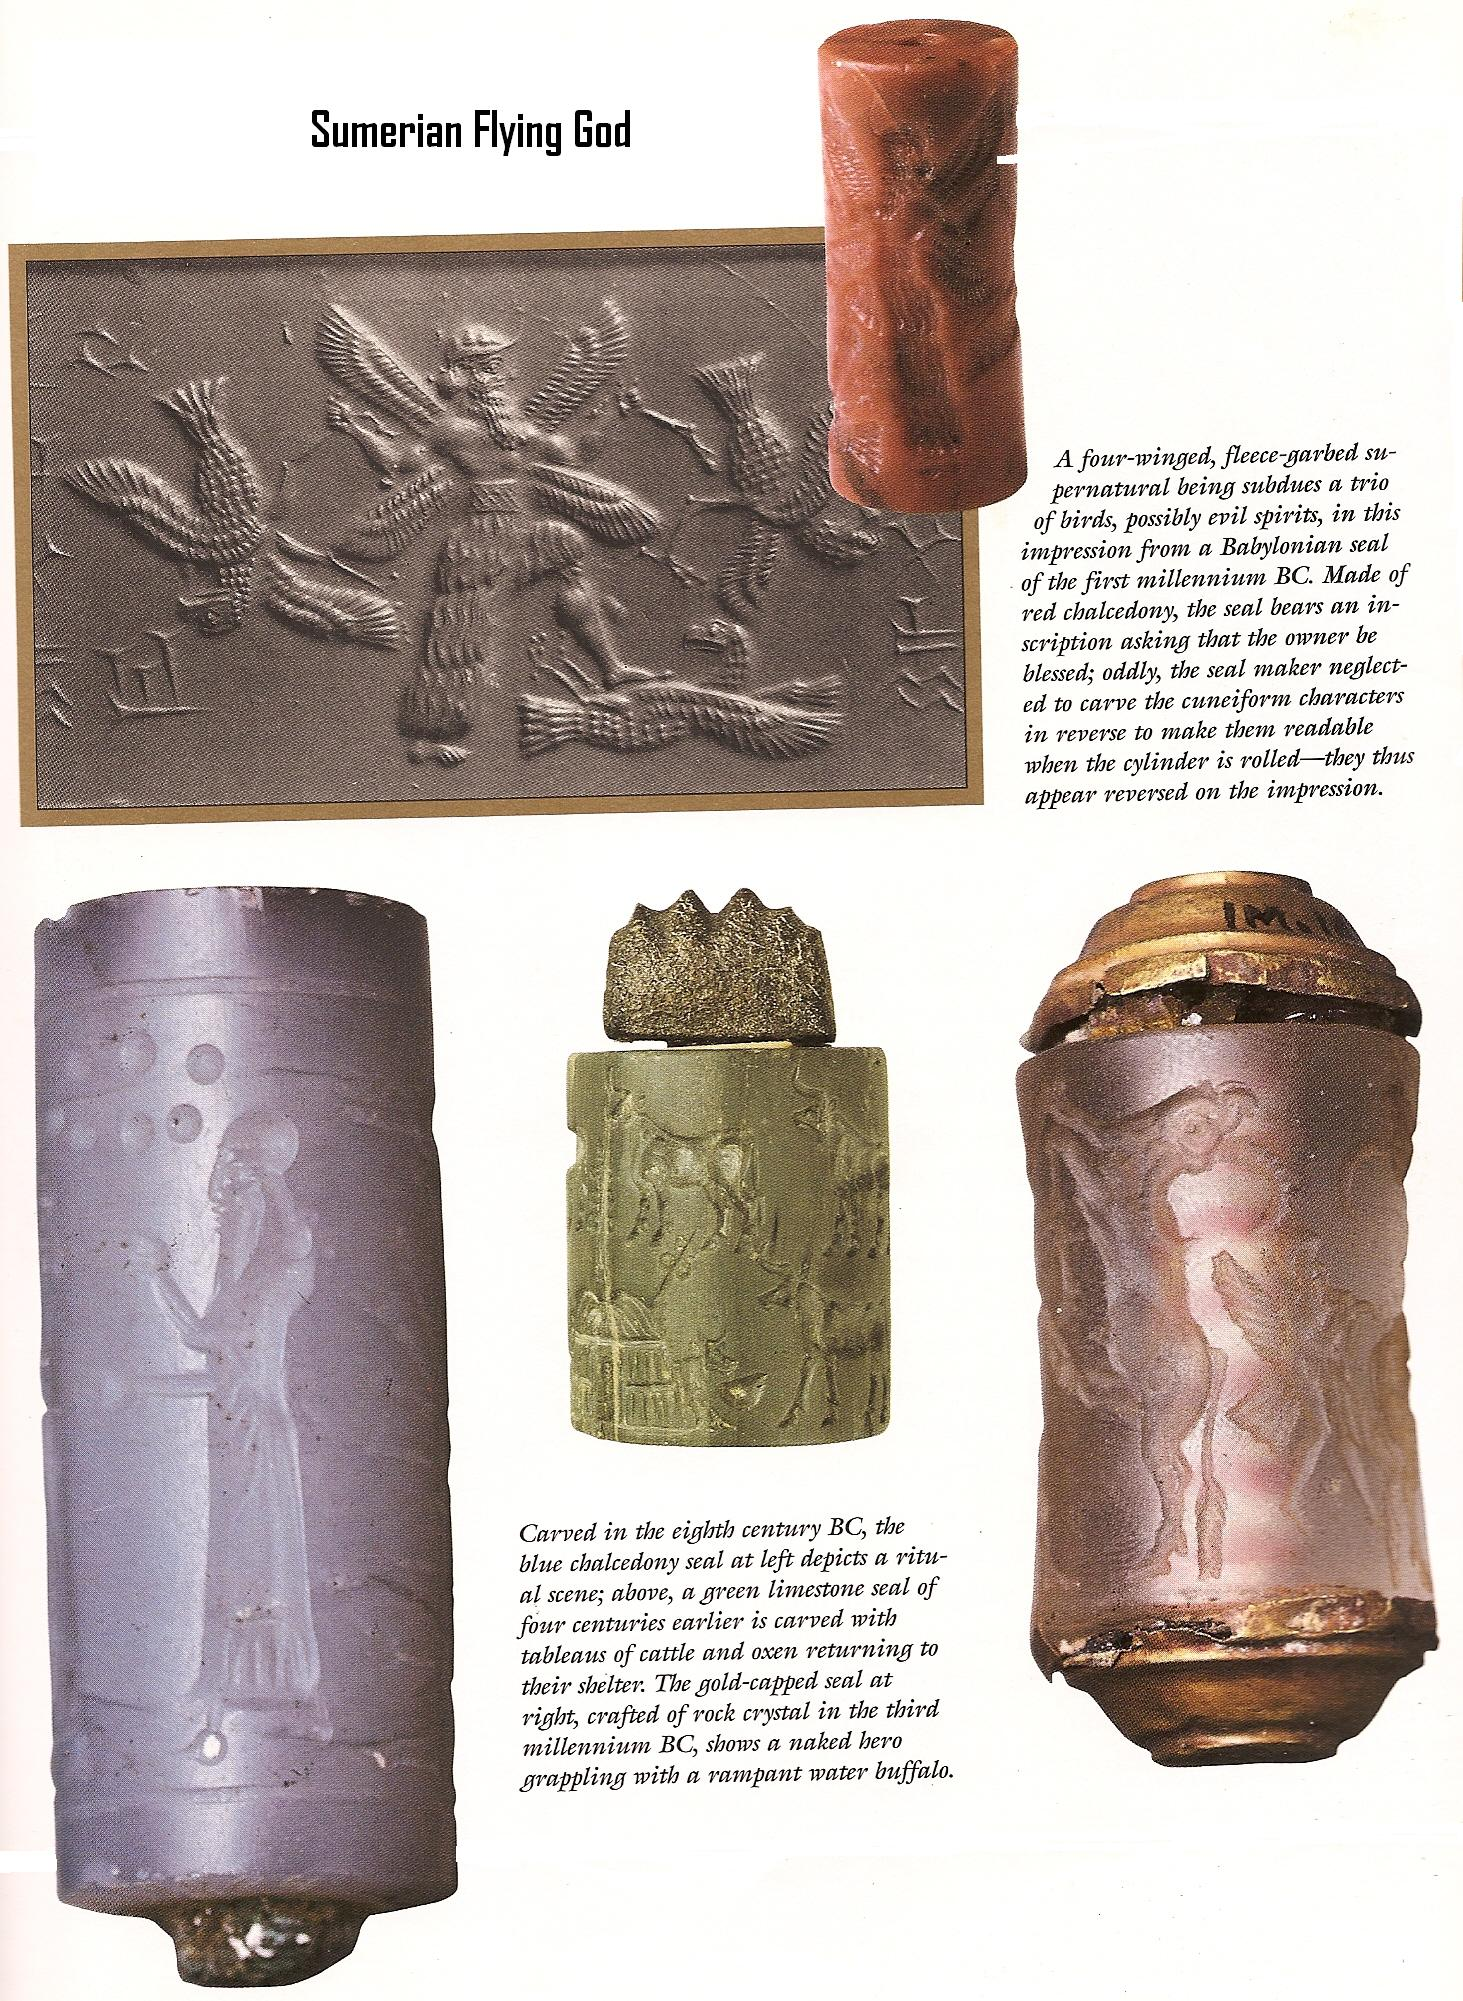 3a - Enlil bottom left, his son & heir Ninurta on top, rolled & pressed upon wet clay, a form of mass printing was created to be used as a newspaper & copy machine, daily news for the ancient cities of Sumer